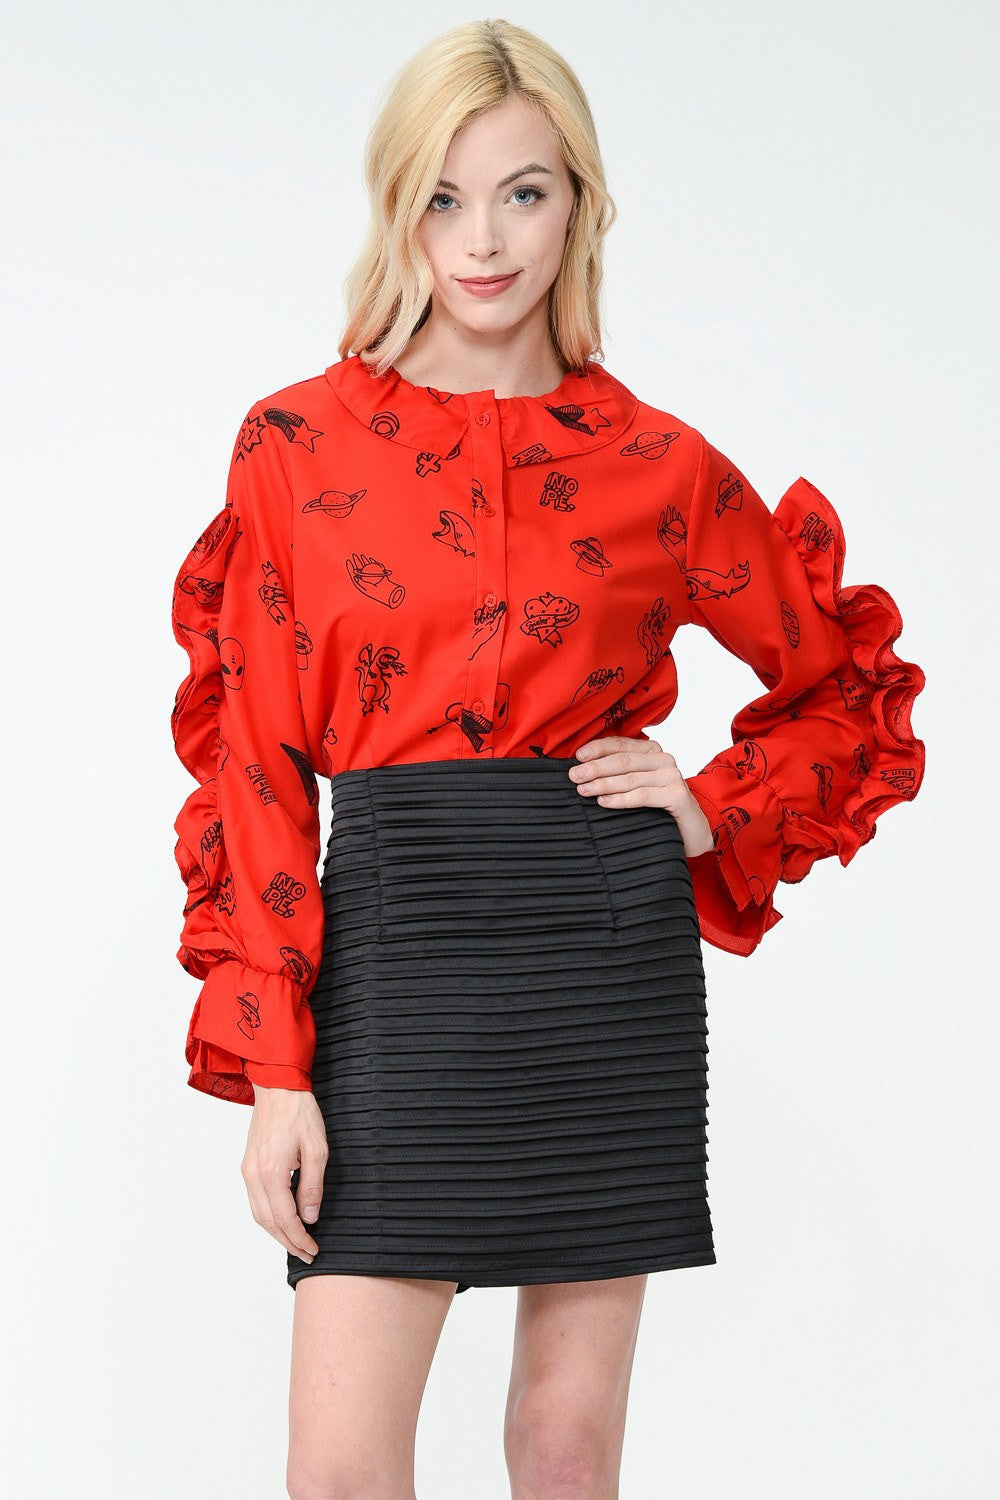 Teen Idol Ruffle Blouse by Sister Jane